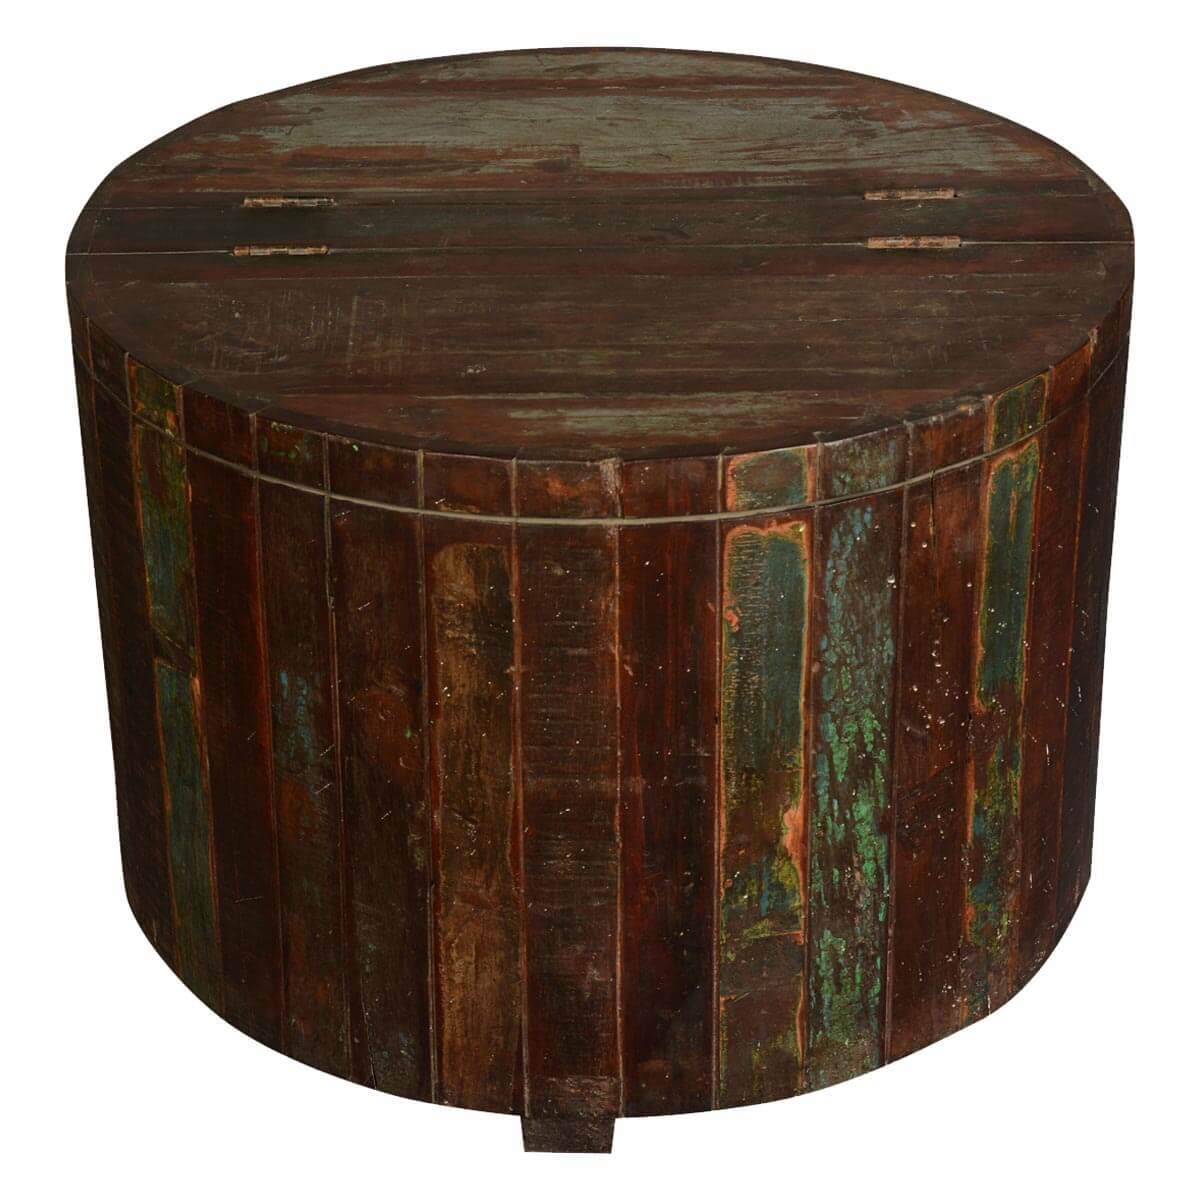 Appalachian rustic reclaimed wood round barrel chest for Rustic wood accent tables